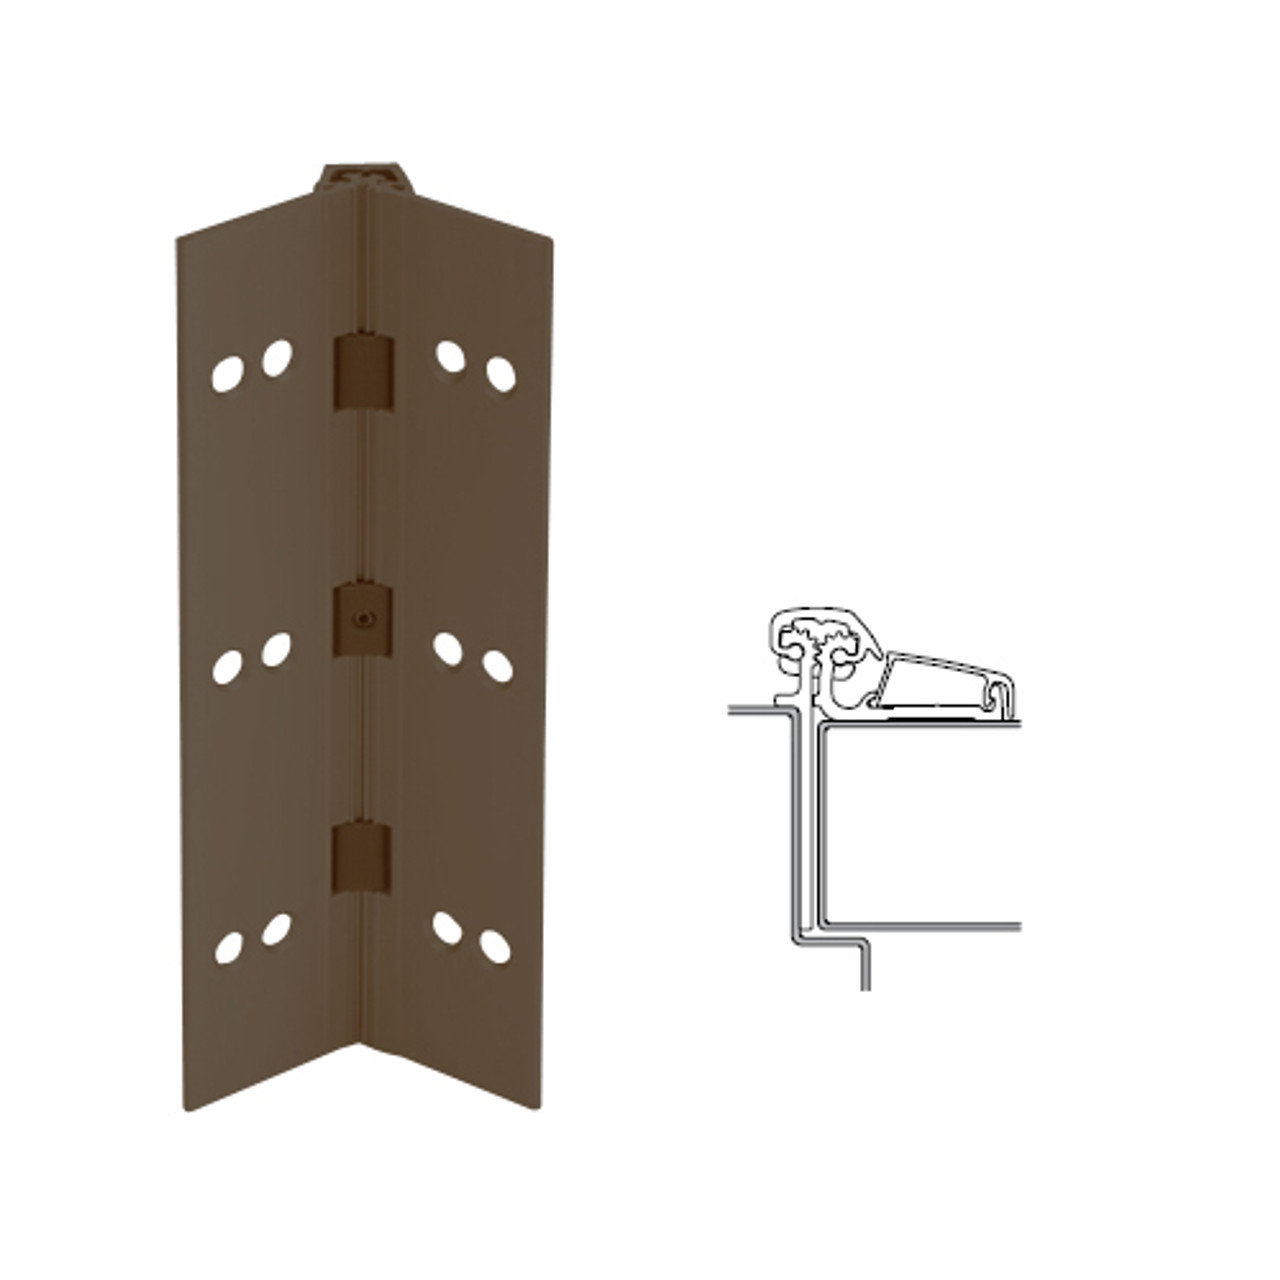 054XY-313AN-95-TEKWD IVES Adjustable Half Surface Continuous Geared Hinges with Wood Screws in Dark Bronze Anodized